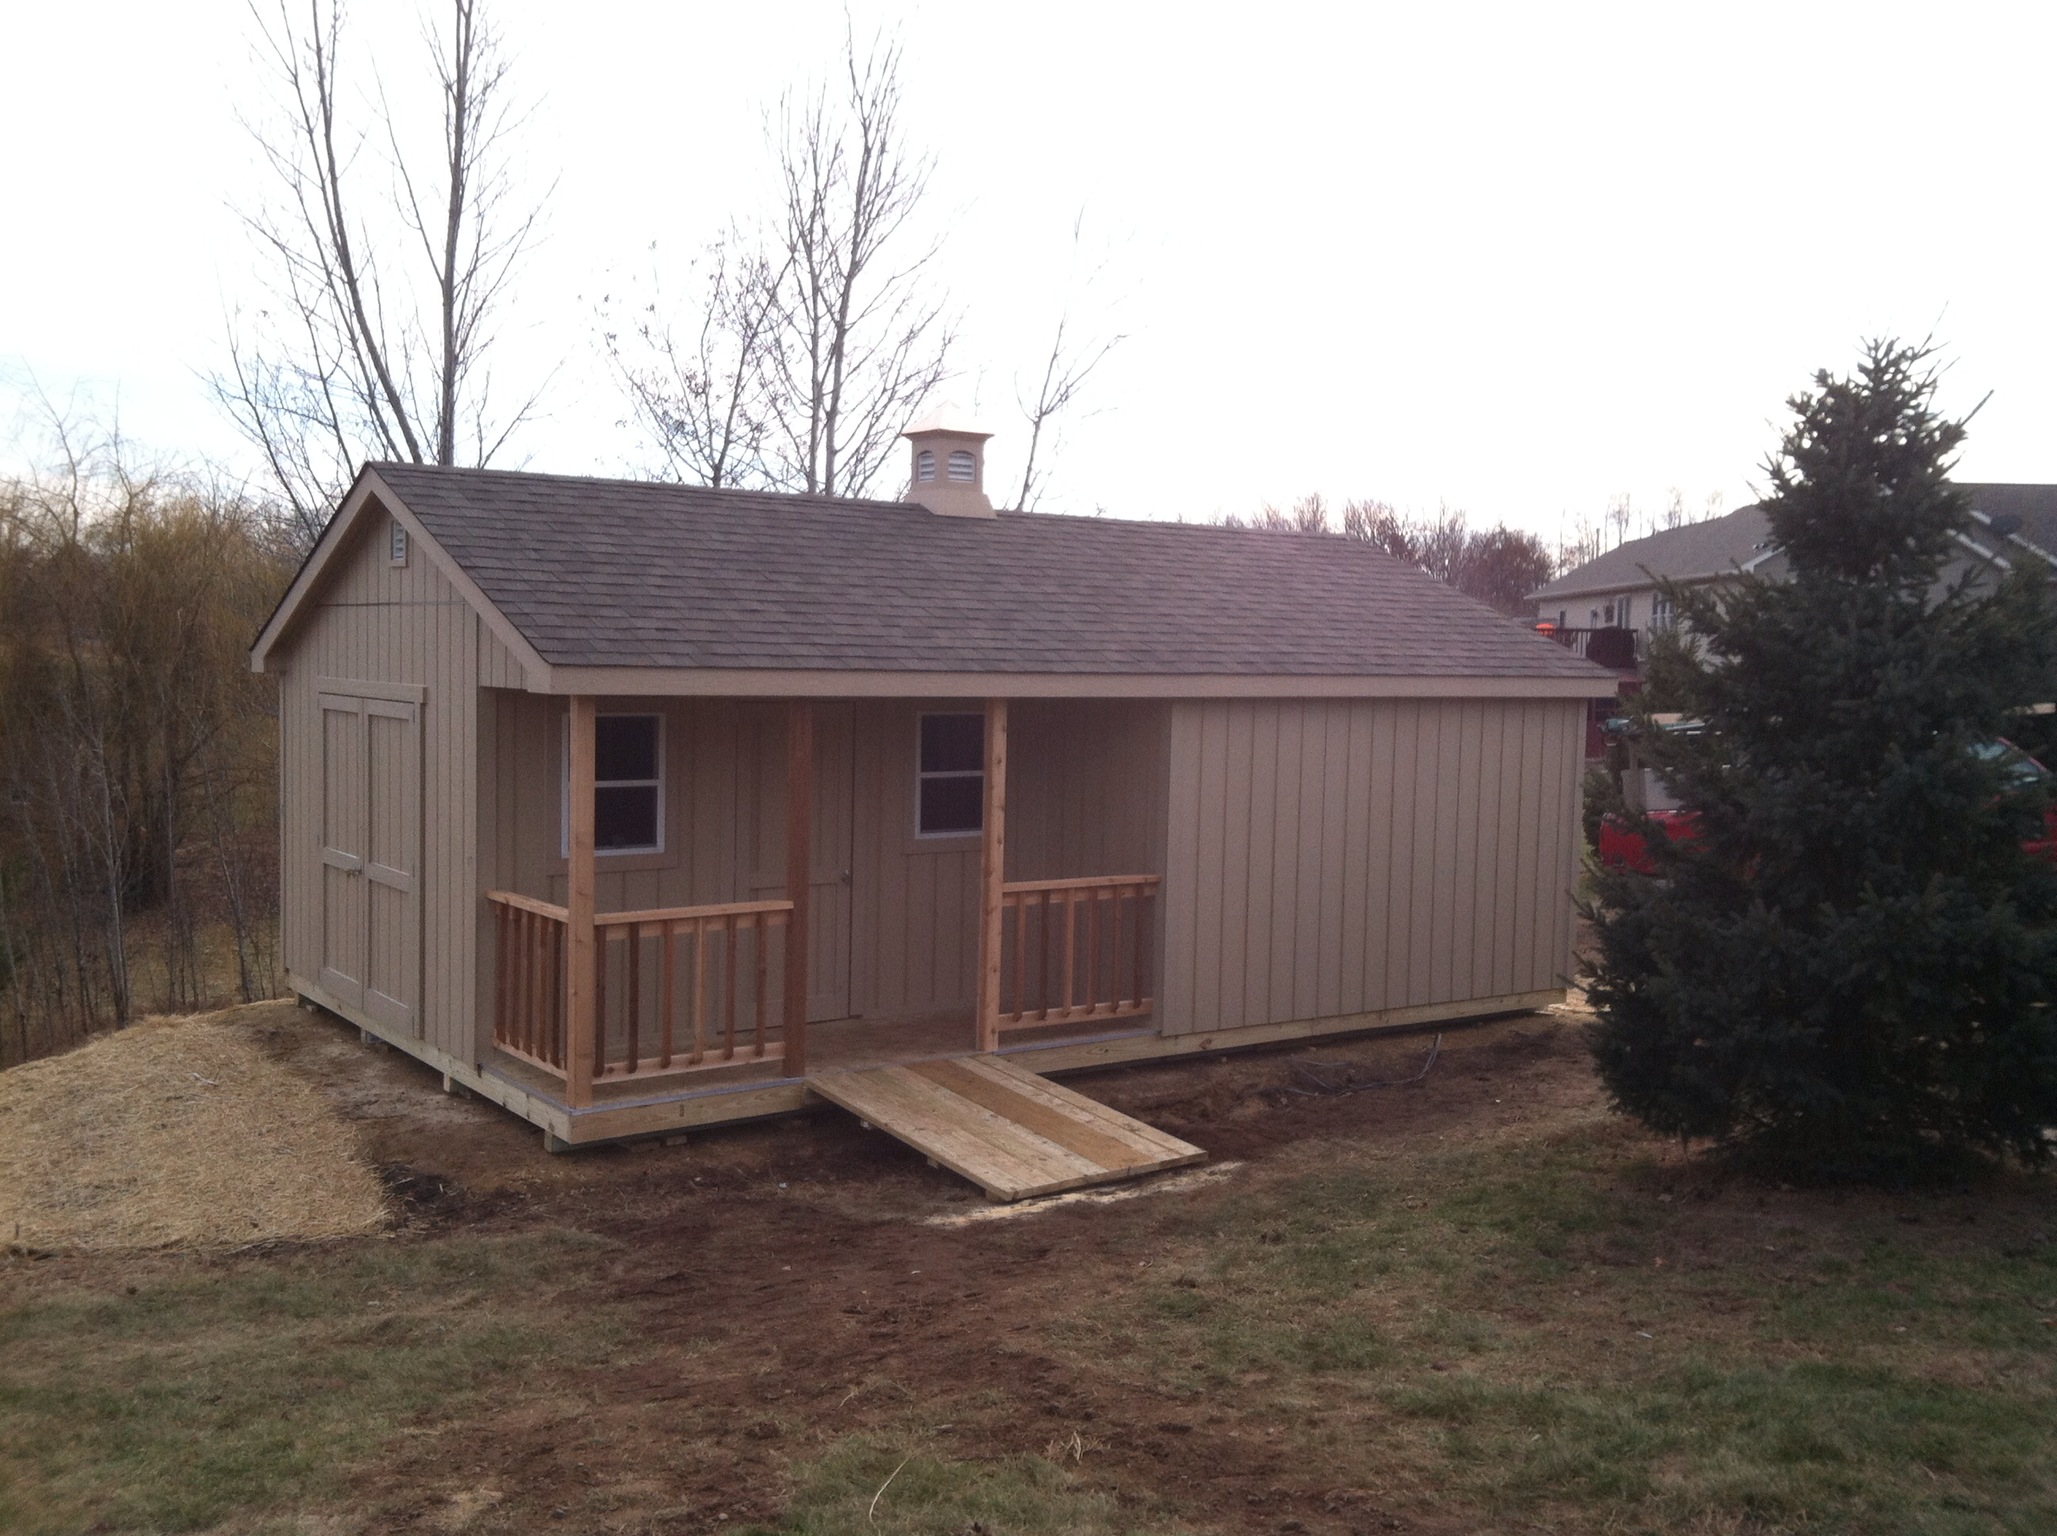 16x24x12 Gable Standard w/ Inset Porch